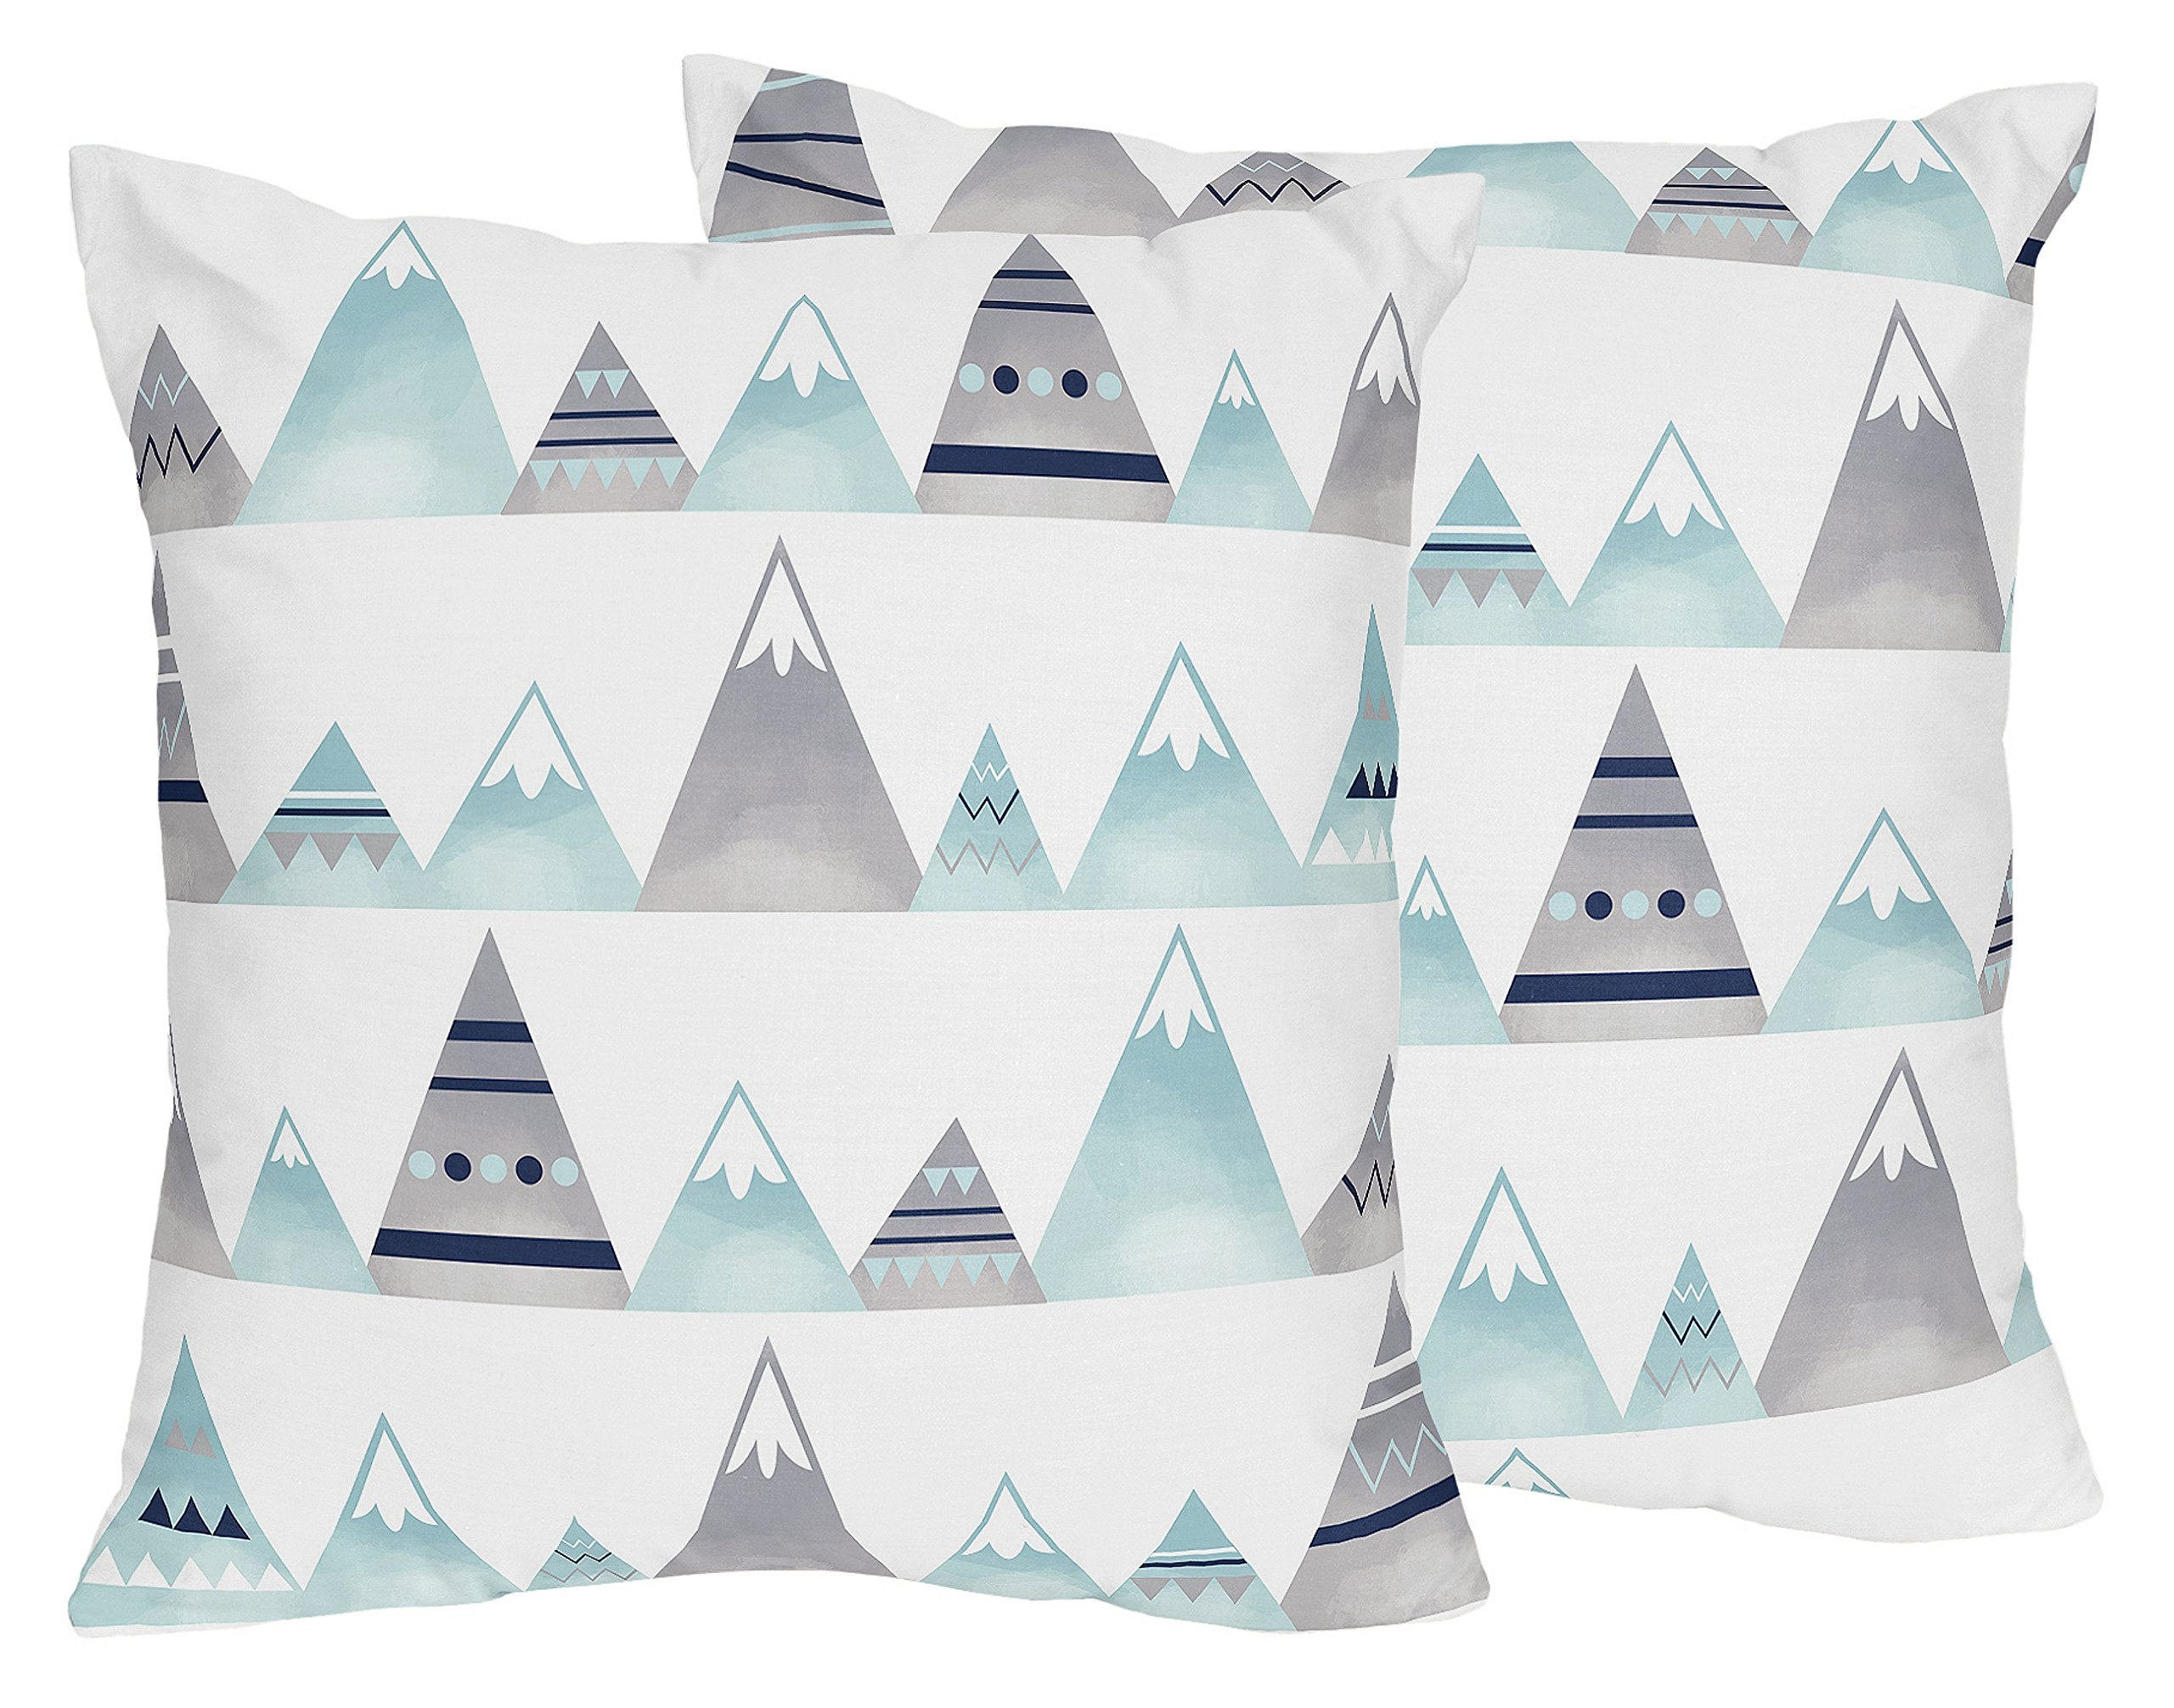 Sweet Jojo Designs 2-Piece Navy Blue, Aqua and Grey Aztec Decorative Accent Throw Pillows for Mountains Collection by